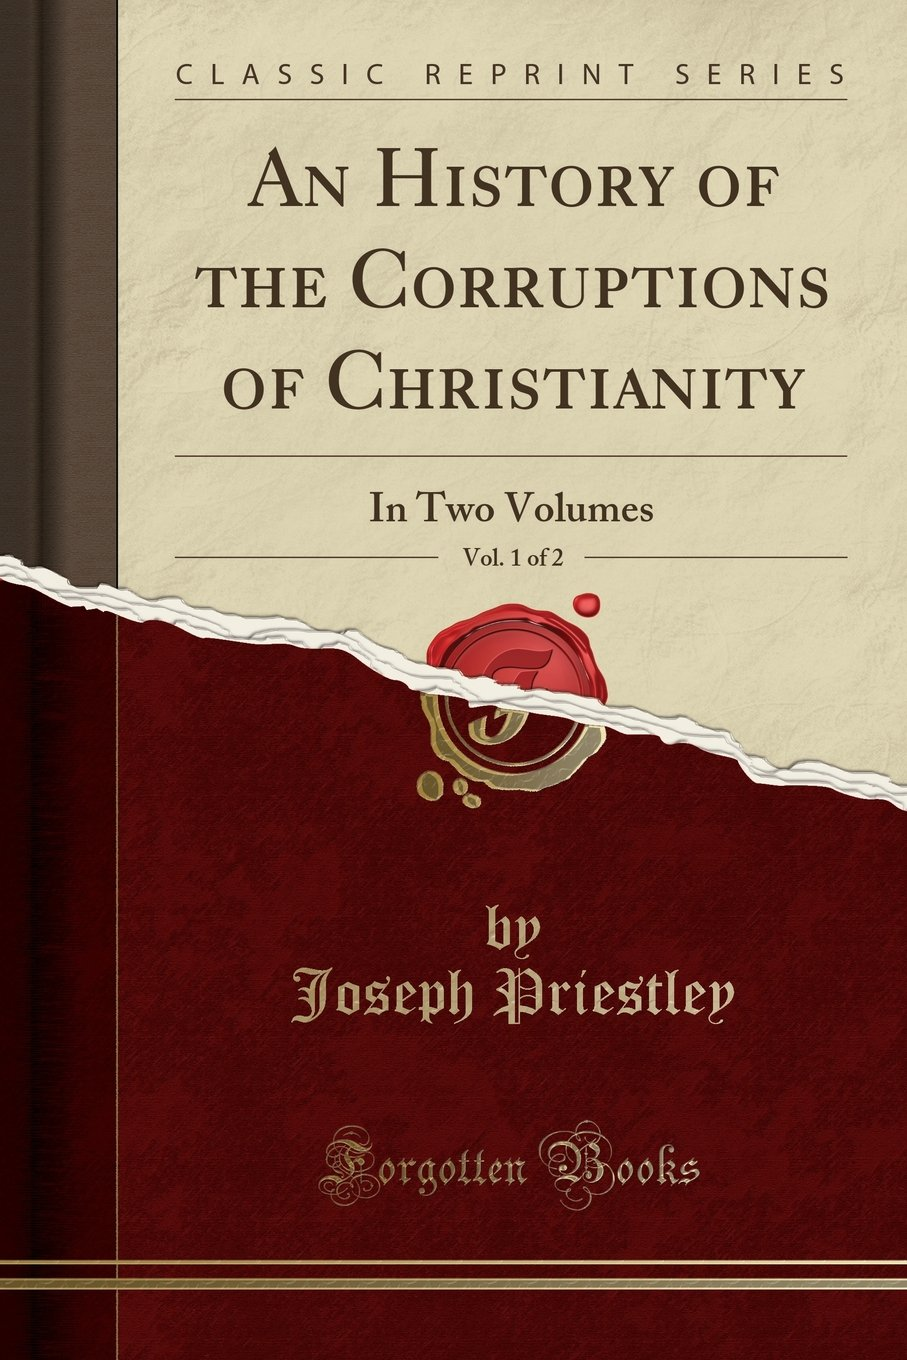 Download An History of the Corruptions of Christianity, Vol. 1 of 2: In Two Volumes (Classic Reprint) PDF